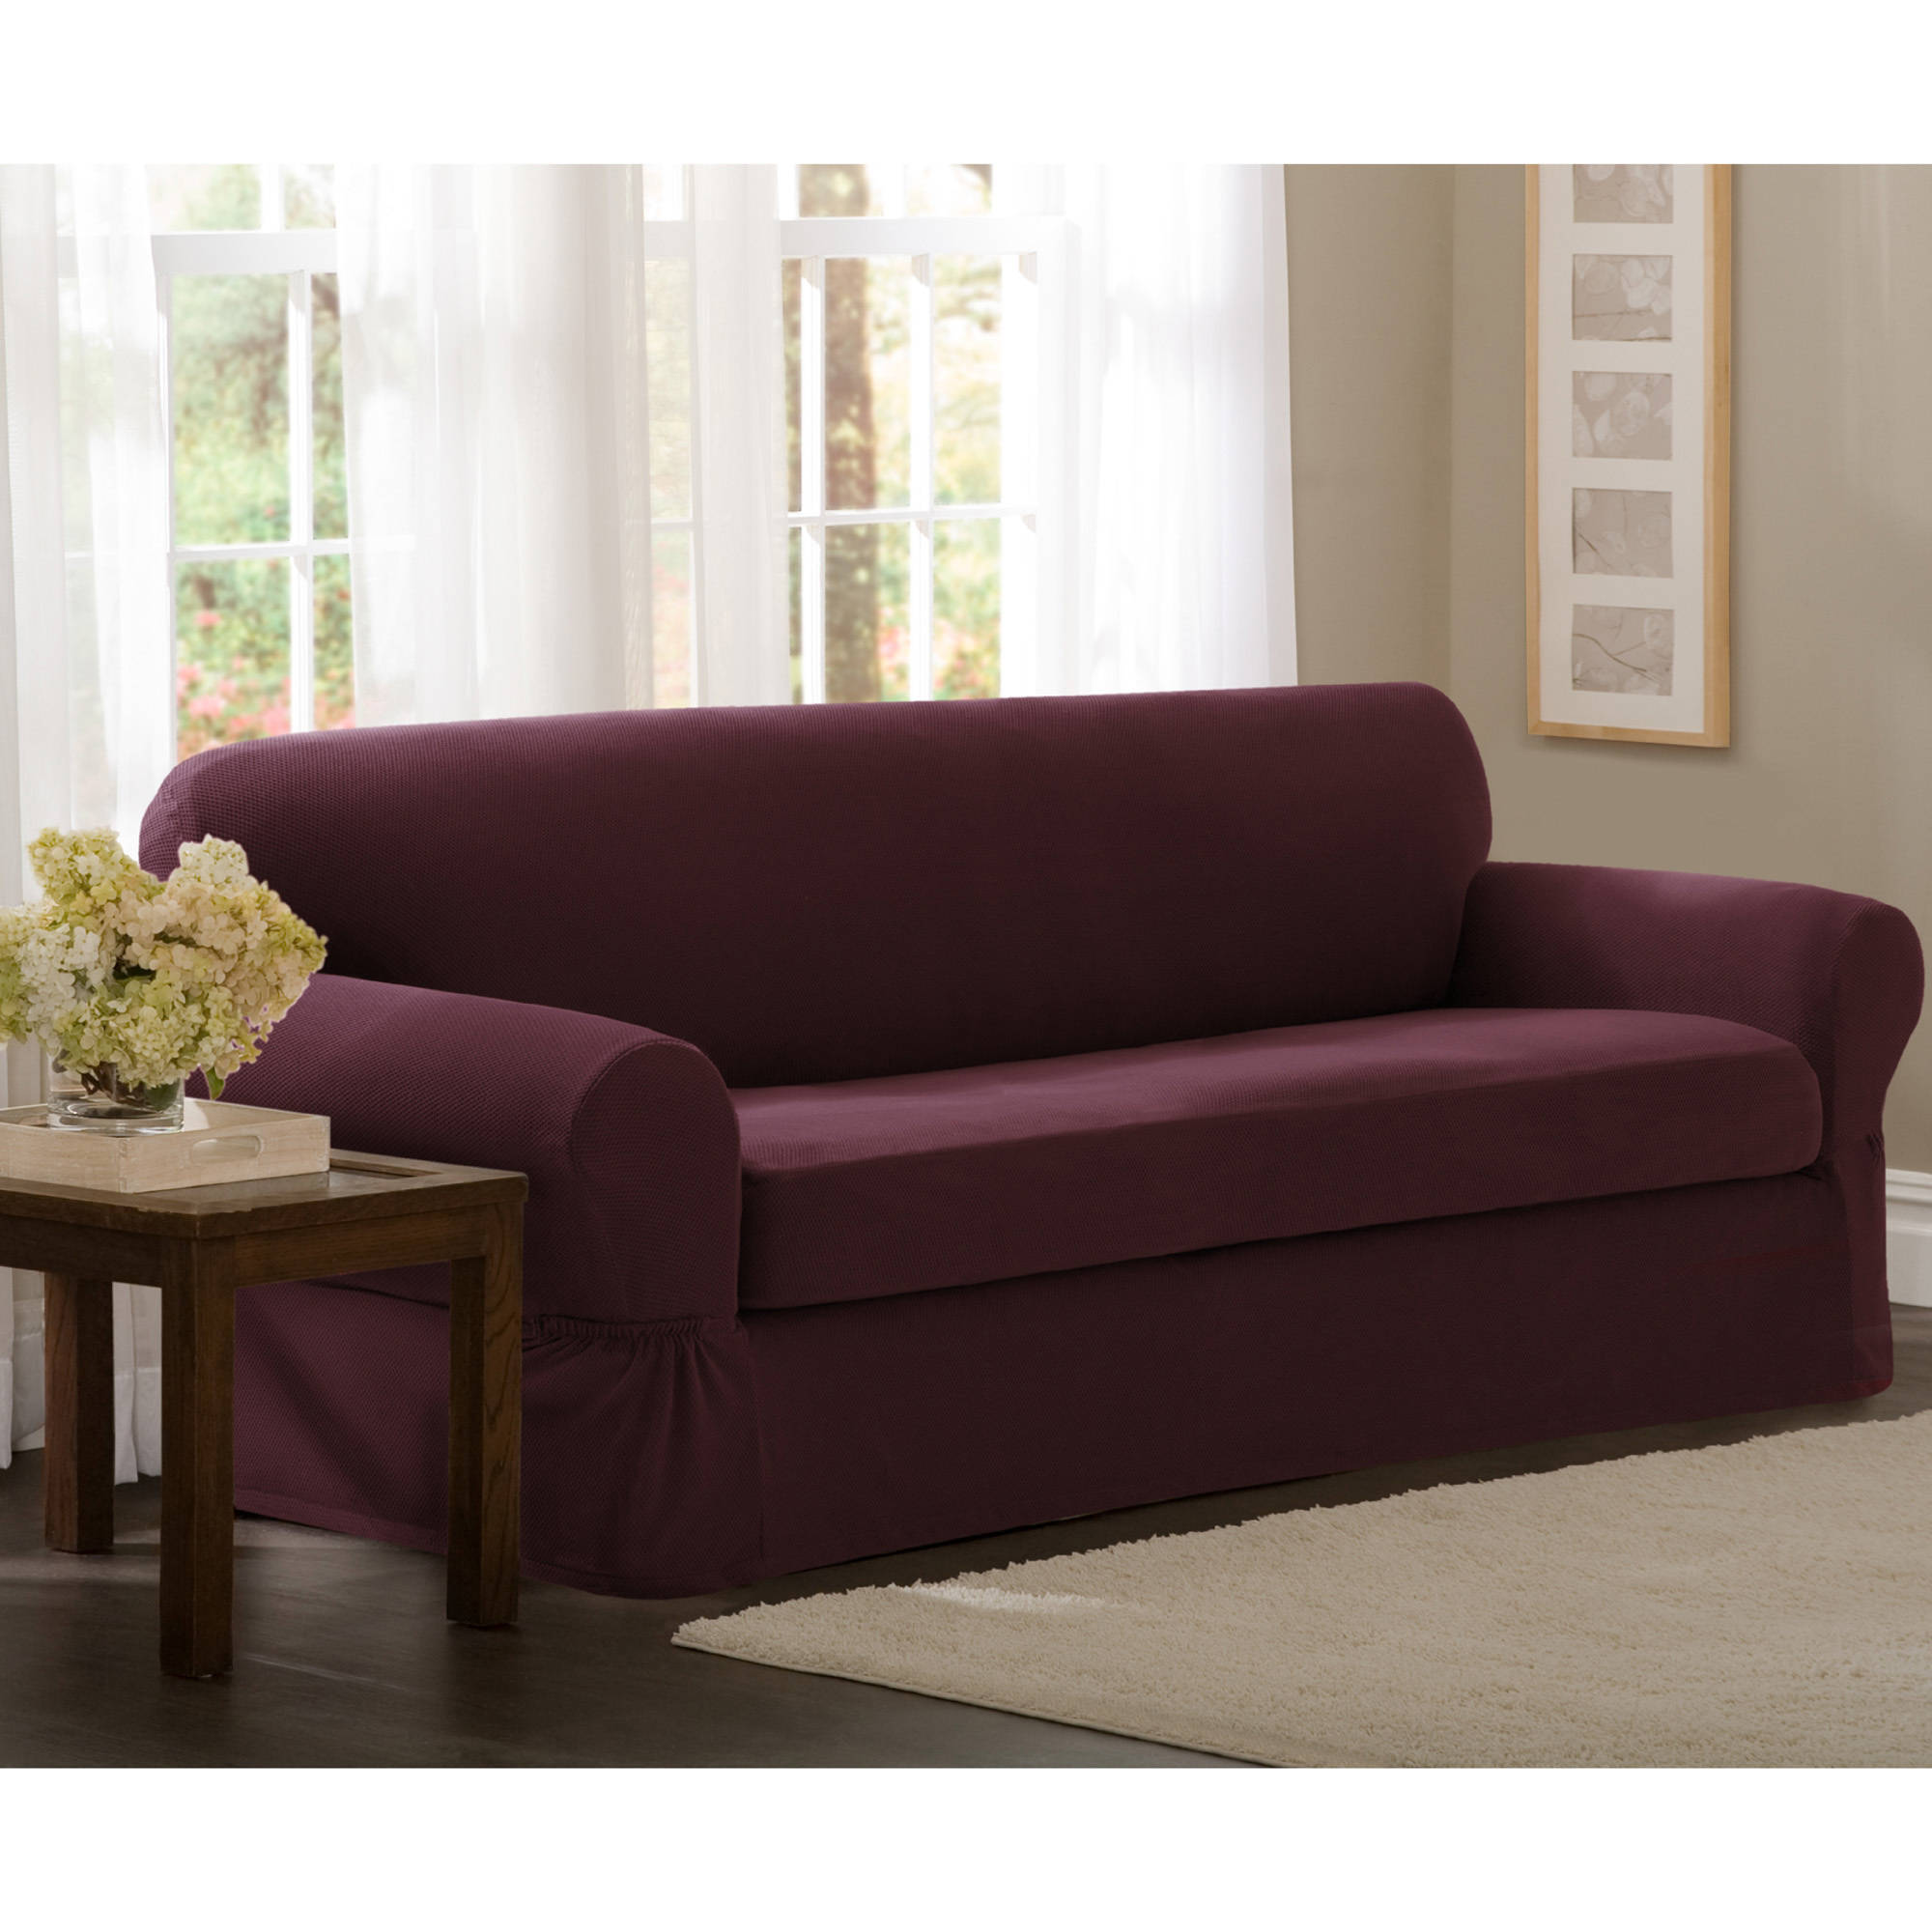 maytex stretch 2-piece sofa slipcover - walmart